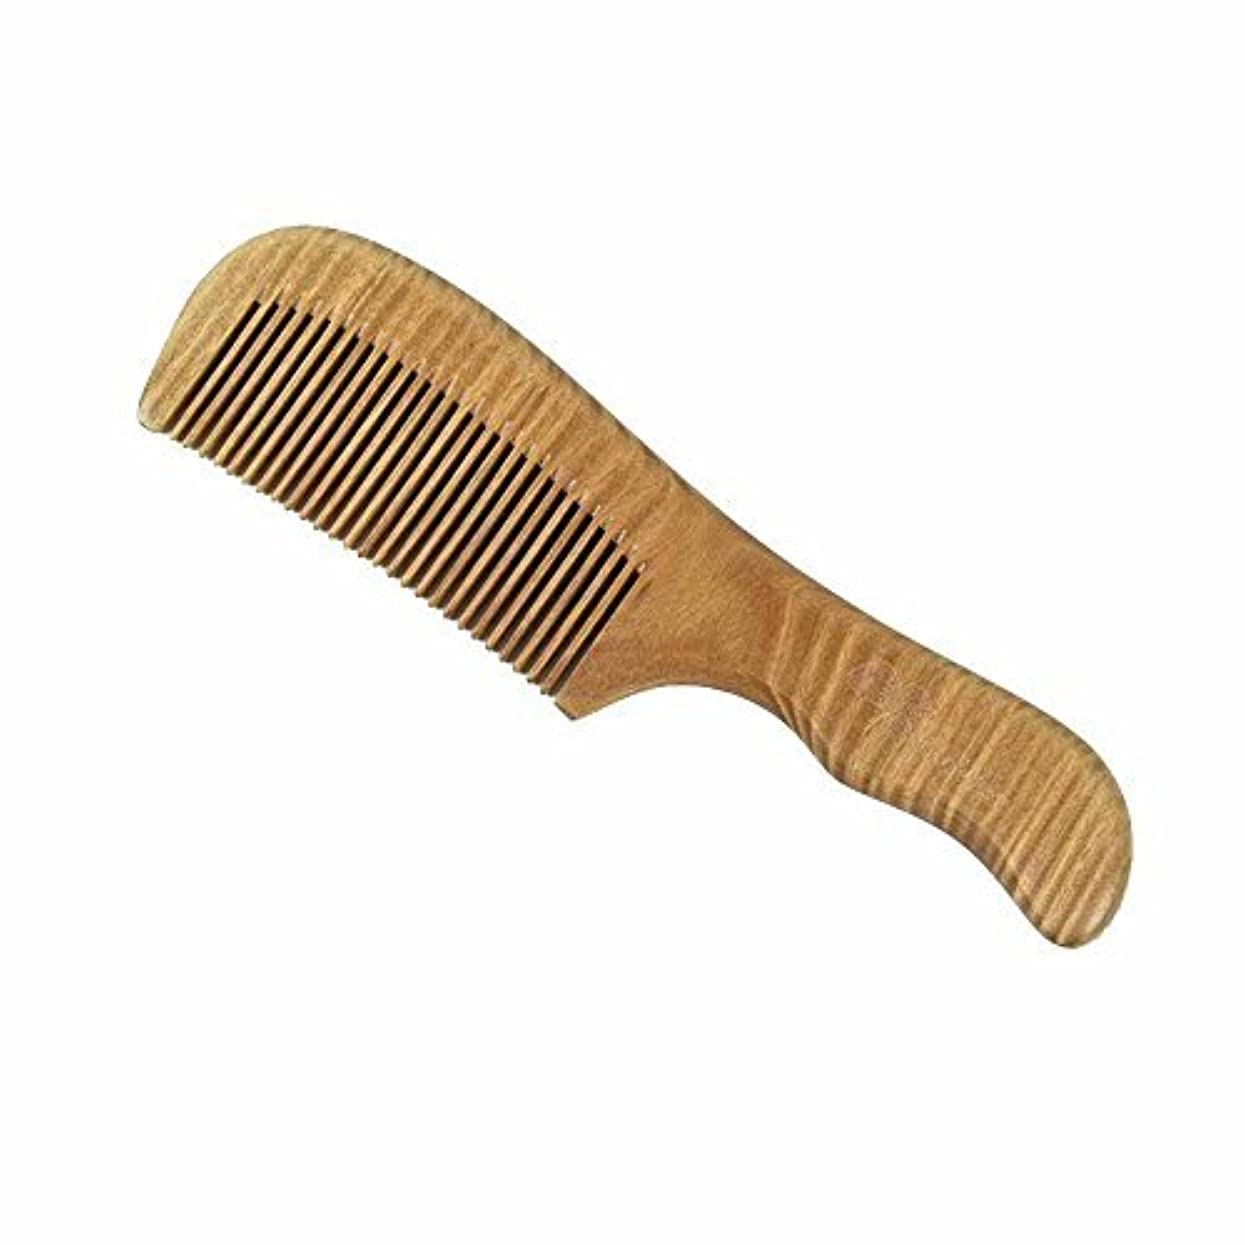 Wooden Hair Brush, by GoWoo, Fine Tooth, Detangling, Natural and Handmade, for Men and Women, From Earth to Earth...